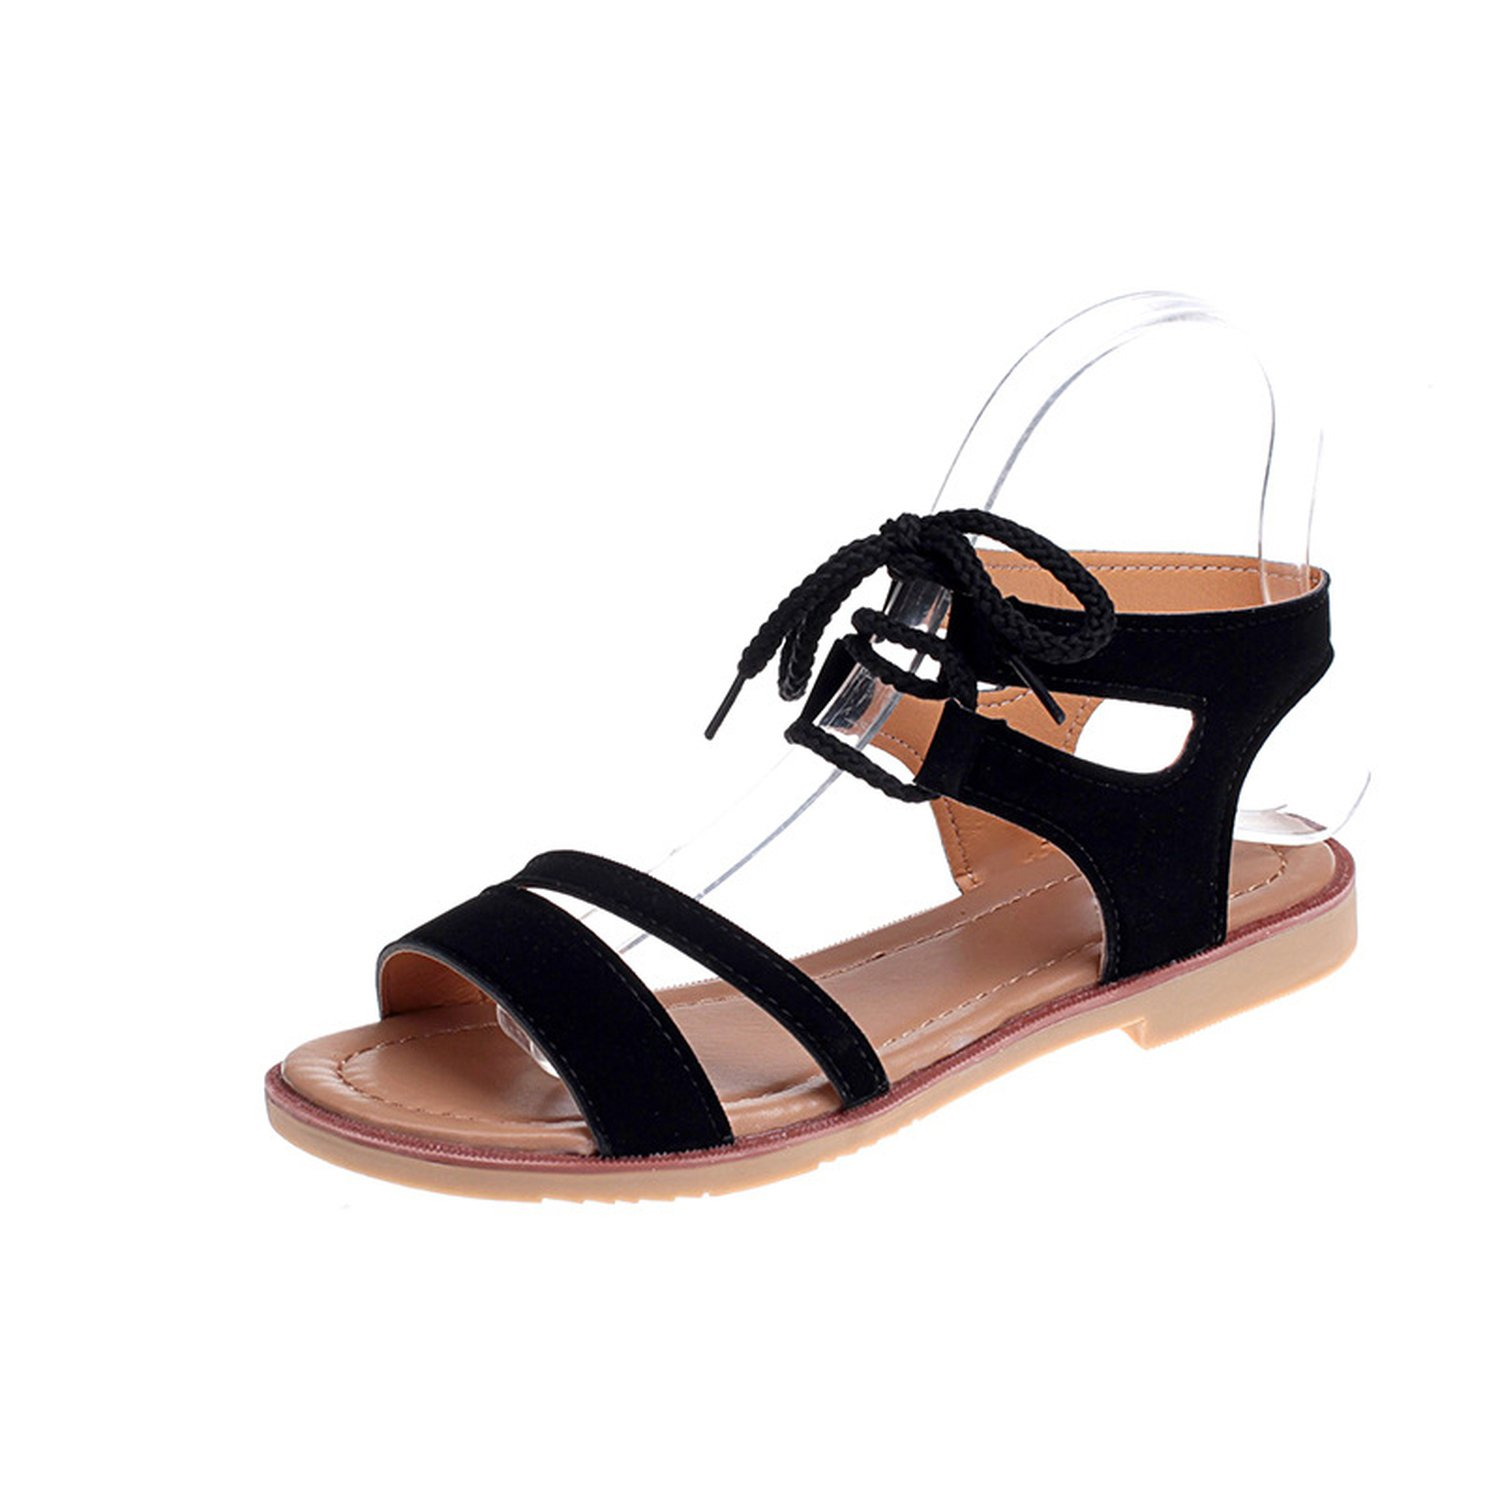 Womens Shoes Sandals 2018 a Hairpin Flat Round Head Round Sandals Sandals 2018 Summer,Black,35